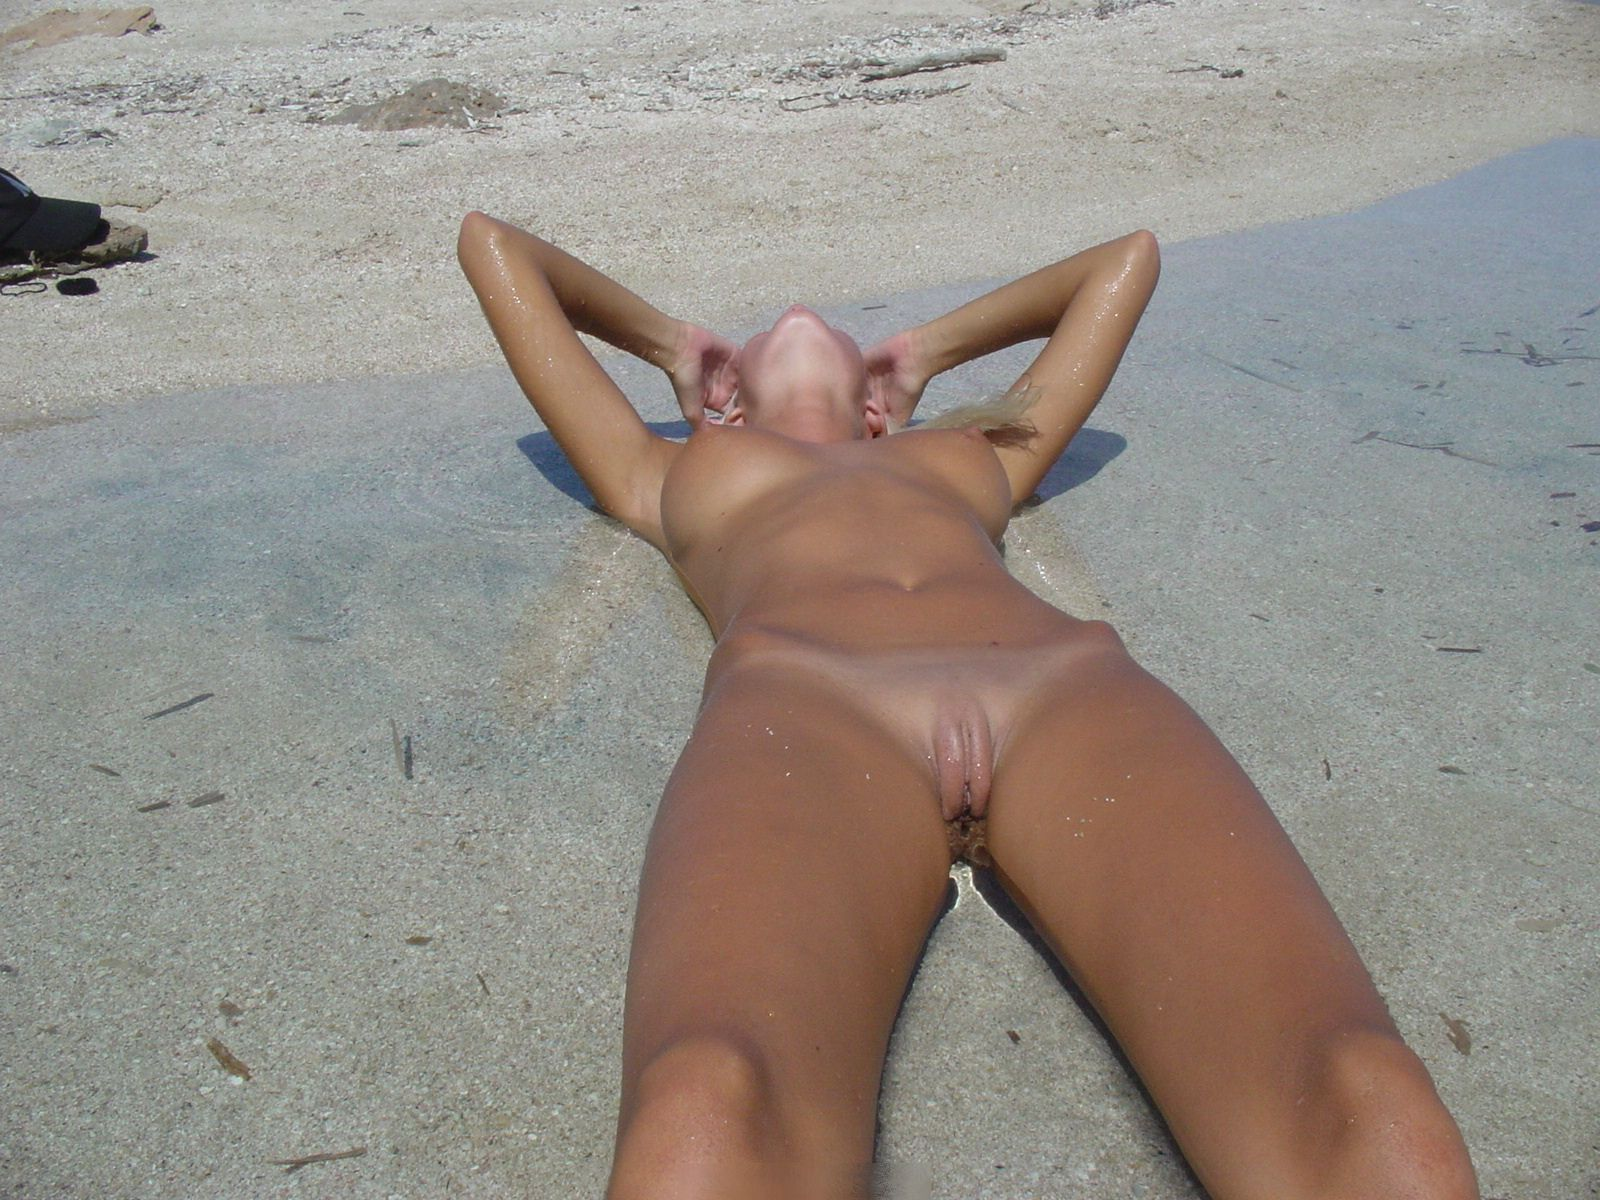 nude beach in aruba